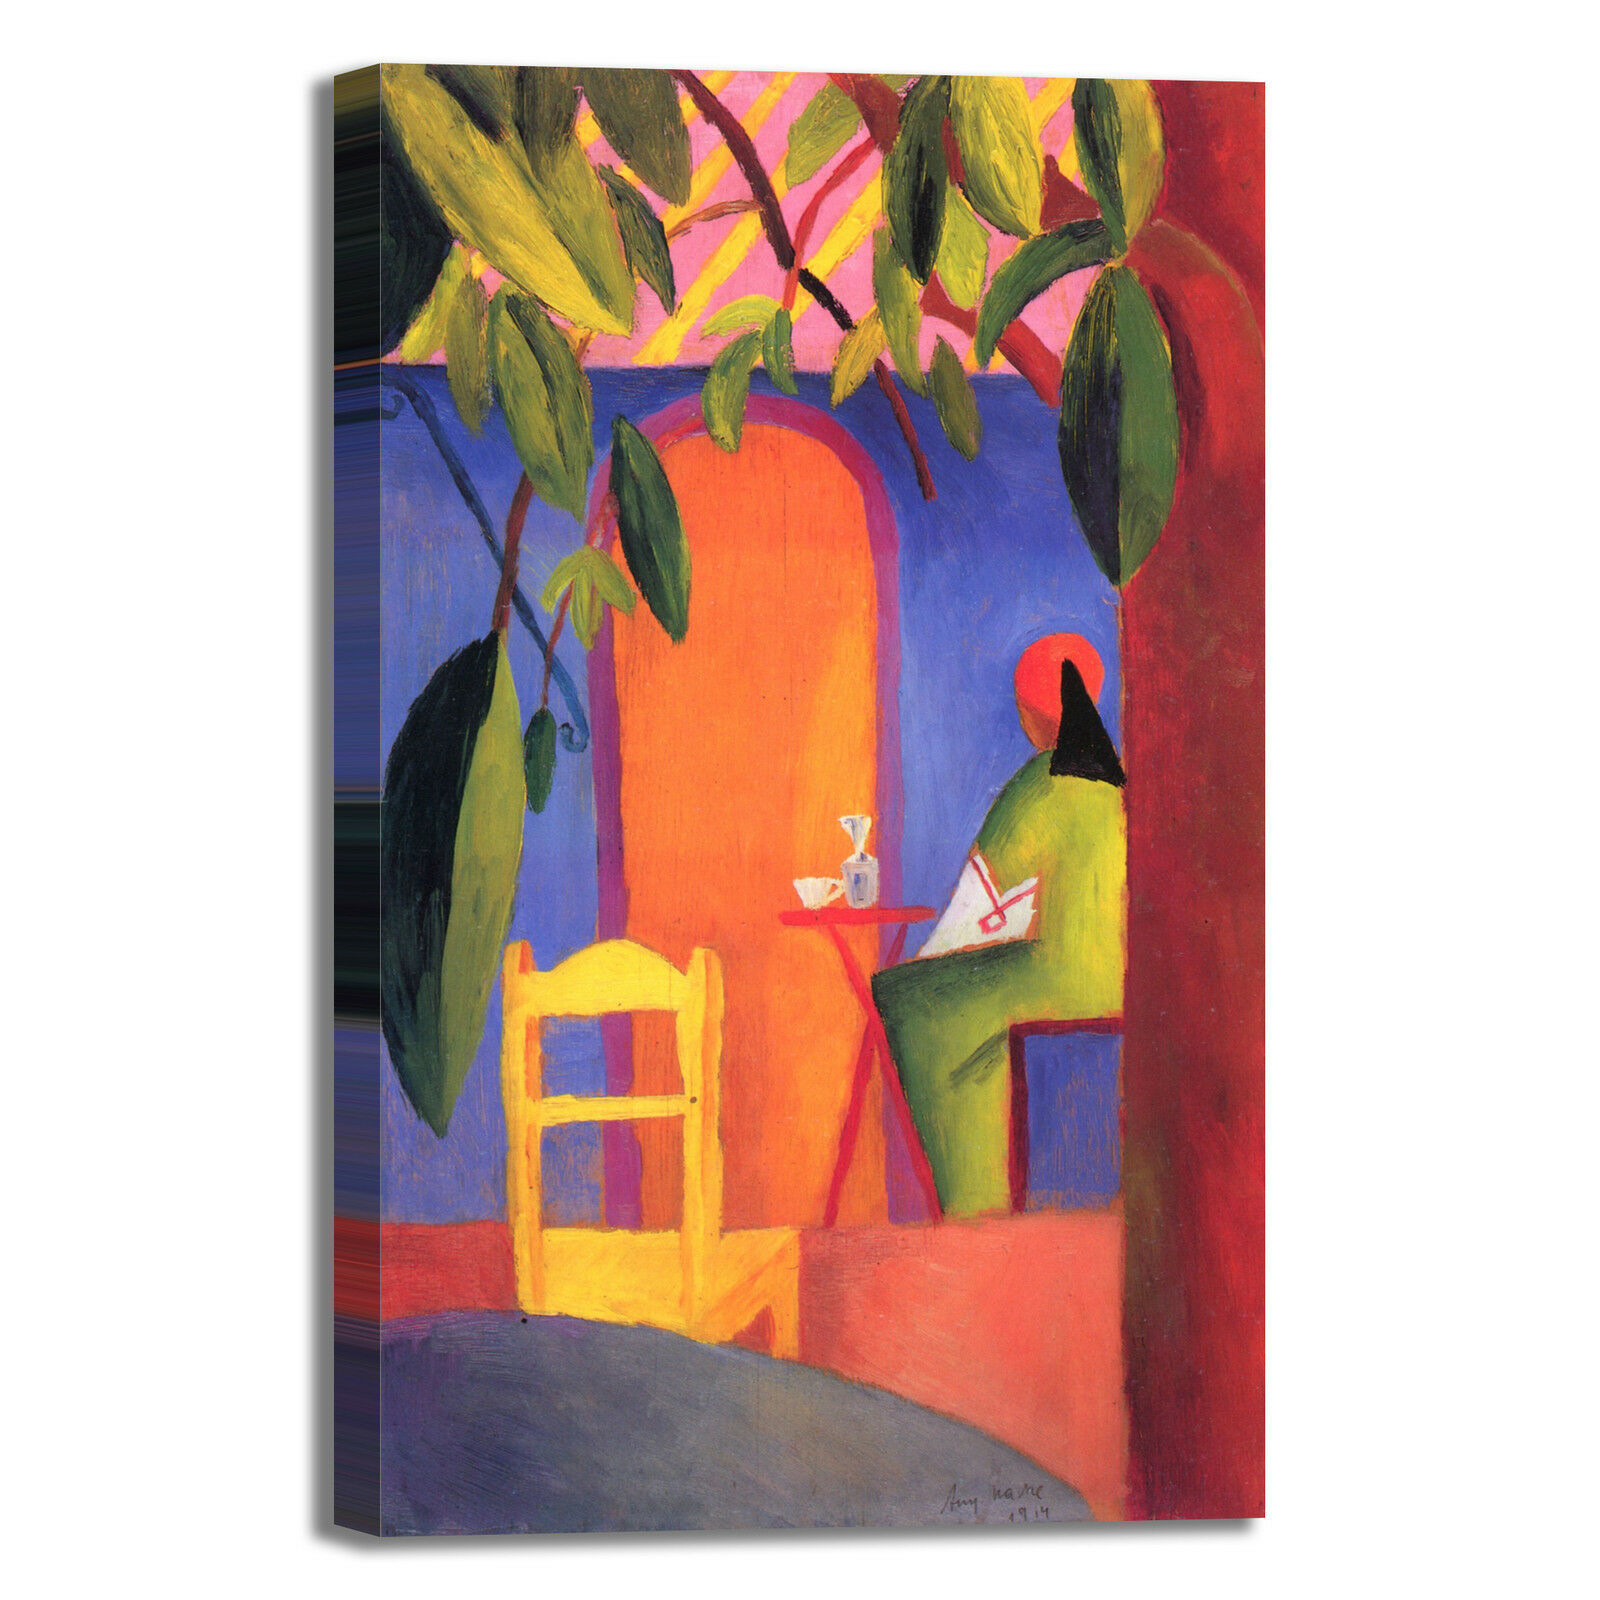 Macke turkisches cafe design quadro dipinto stampa tela dipinto quadro telaio arRouge o casa 3f27ea